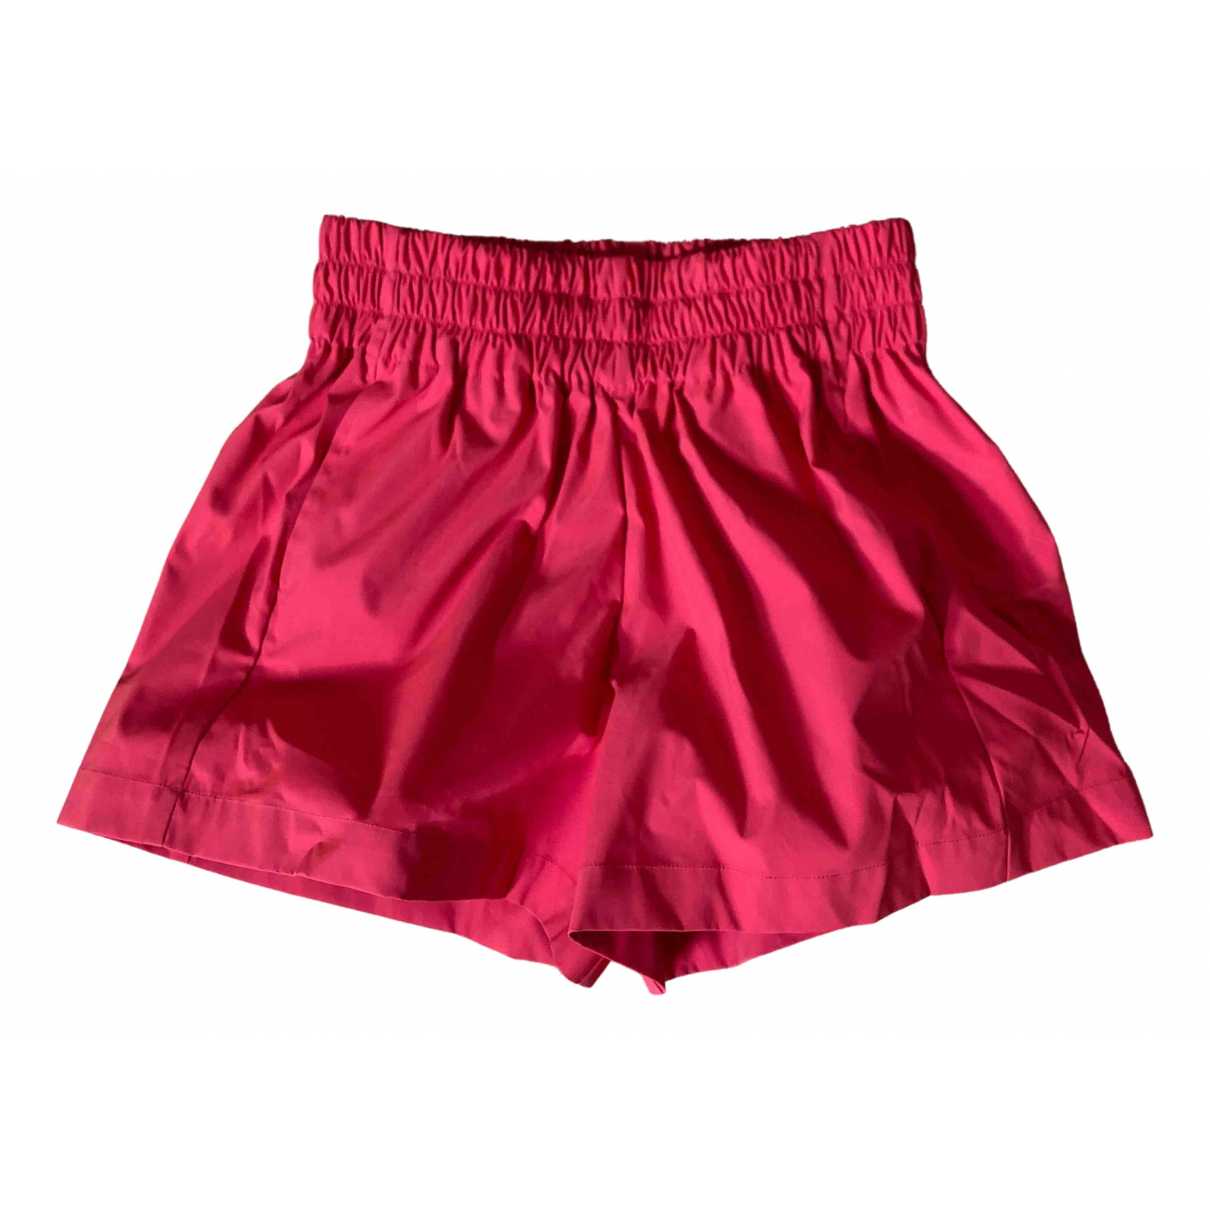 Maje \N Red Shorts for Women 1 0-5